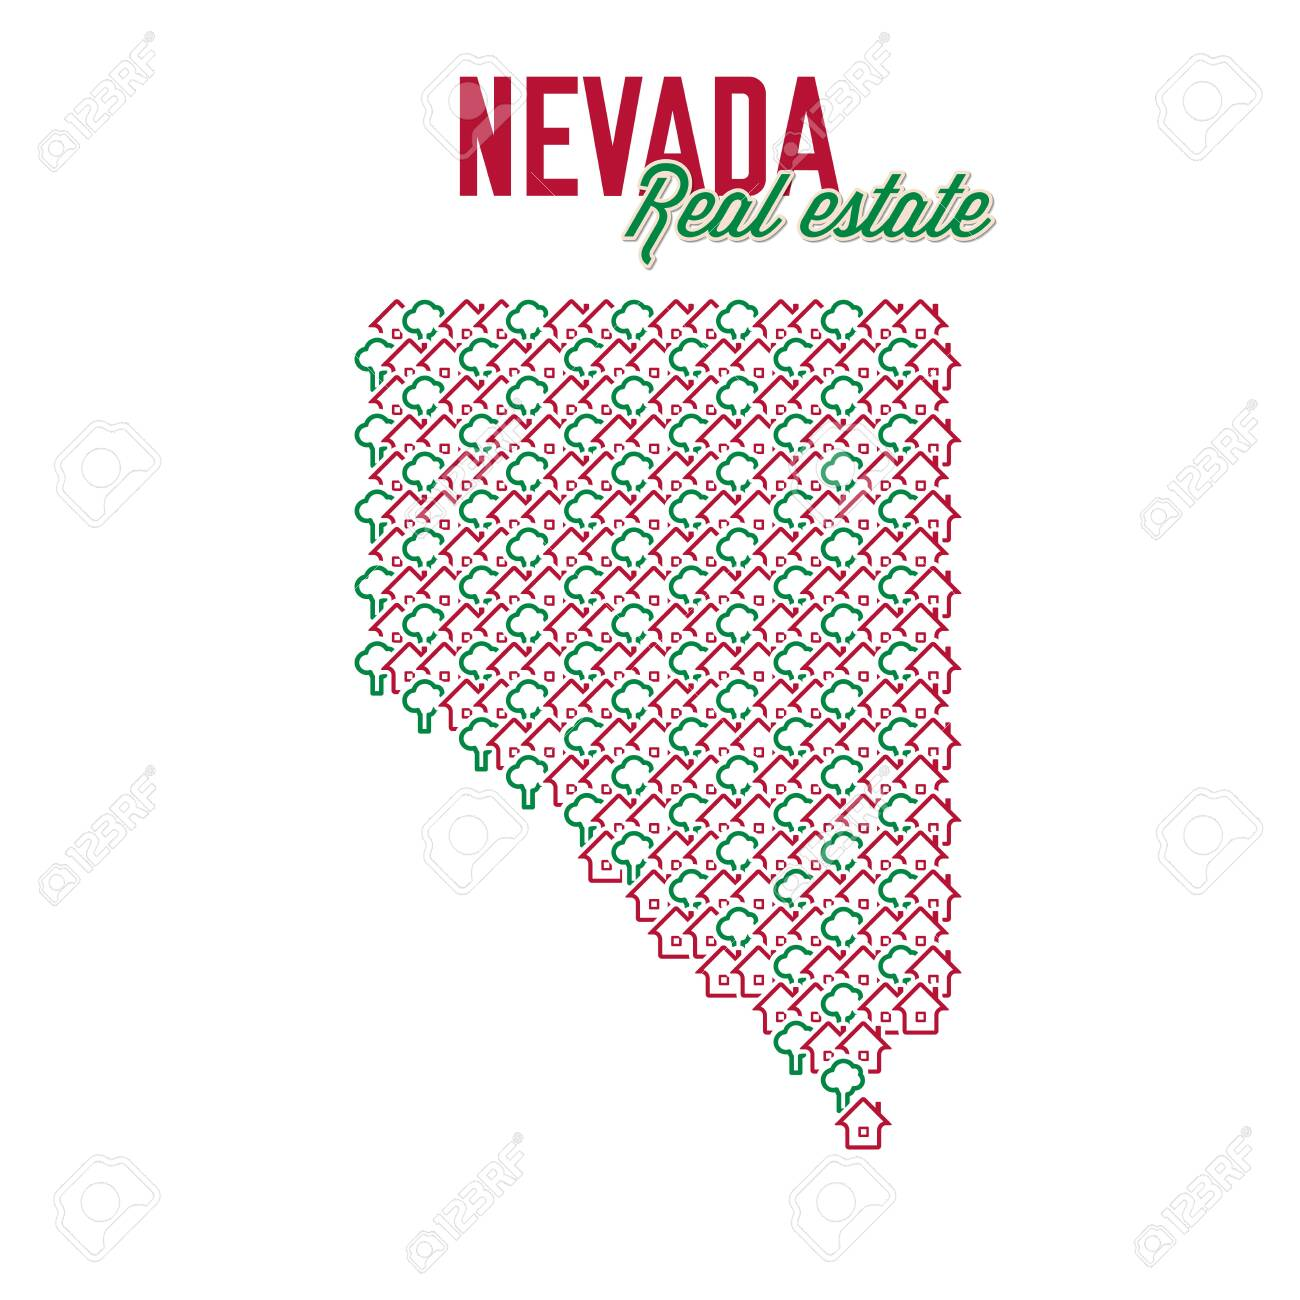 Nevada Real Estate Properties Map Text Design Nevada Us State Royalty Free Cliparts Vectors And Stock Illustration Image 137354318